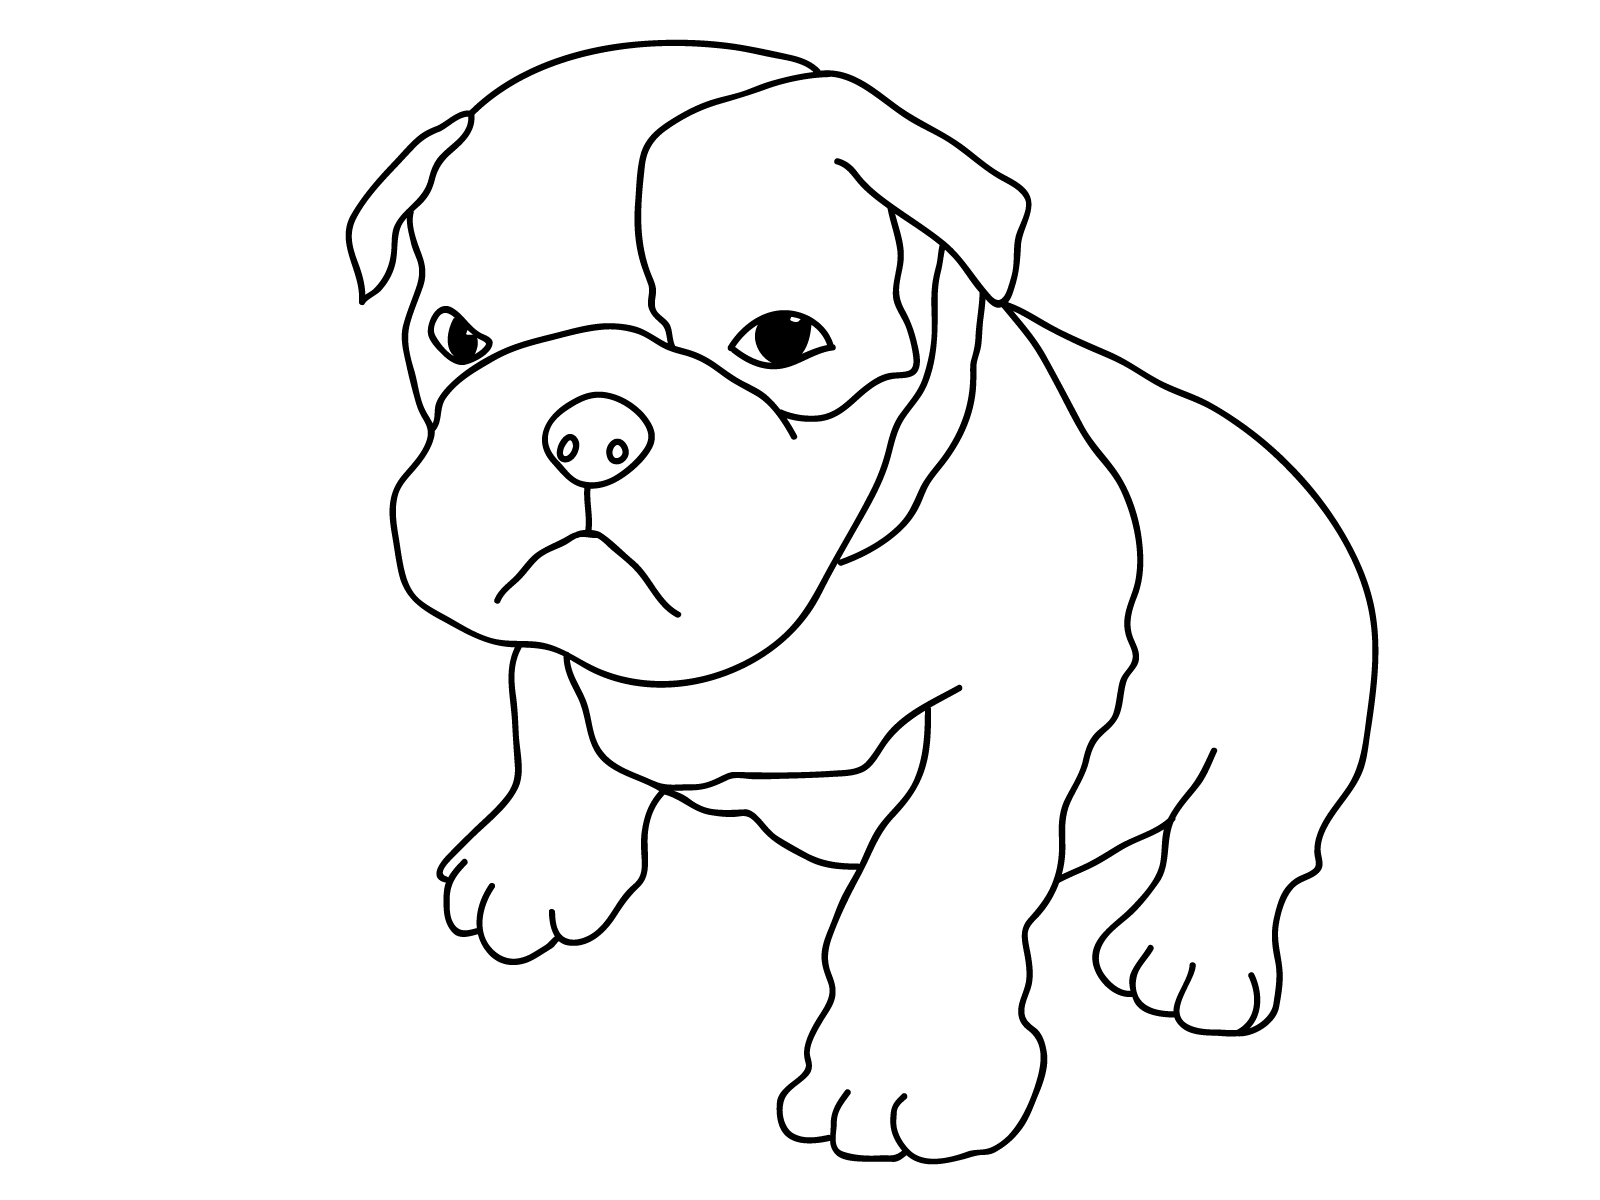 puppy pictures for coloring puppy clifford coloring pages at getcoloringscom free for pictures coloring puppy